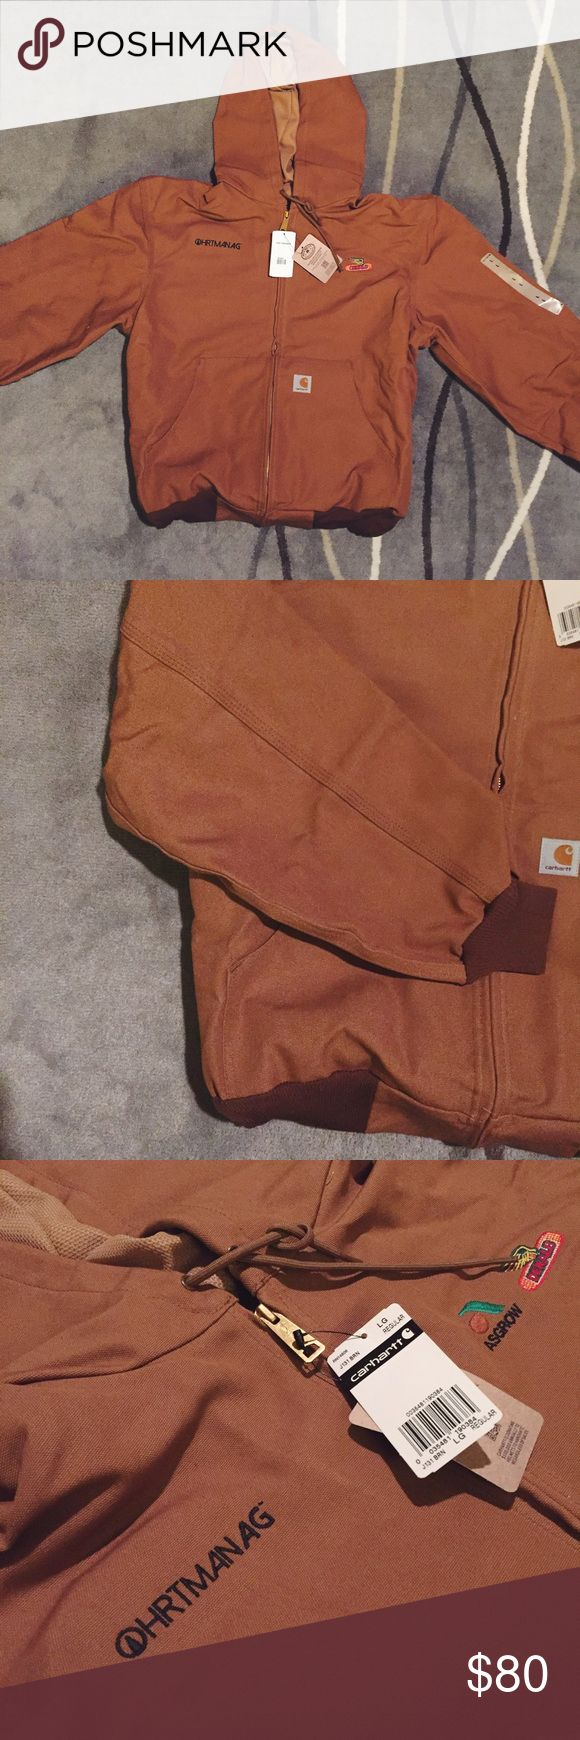 NWT Sandstone Carhartt Jacket Jacket with embroidered seed corn logos. In excellent condition, never been worn. Carhartt Jackets & Coats